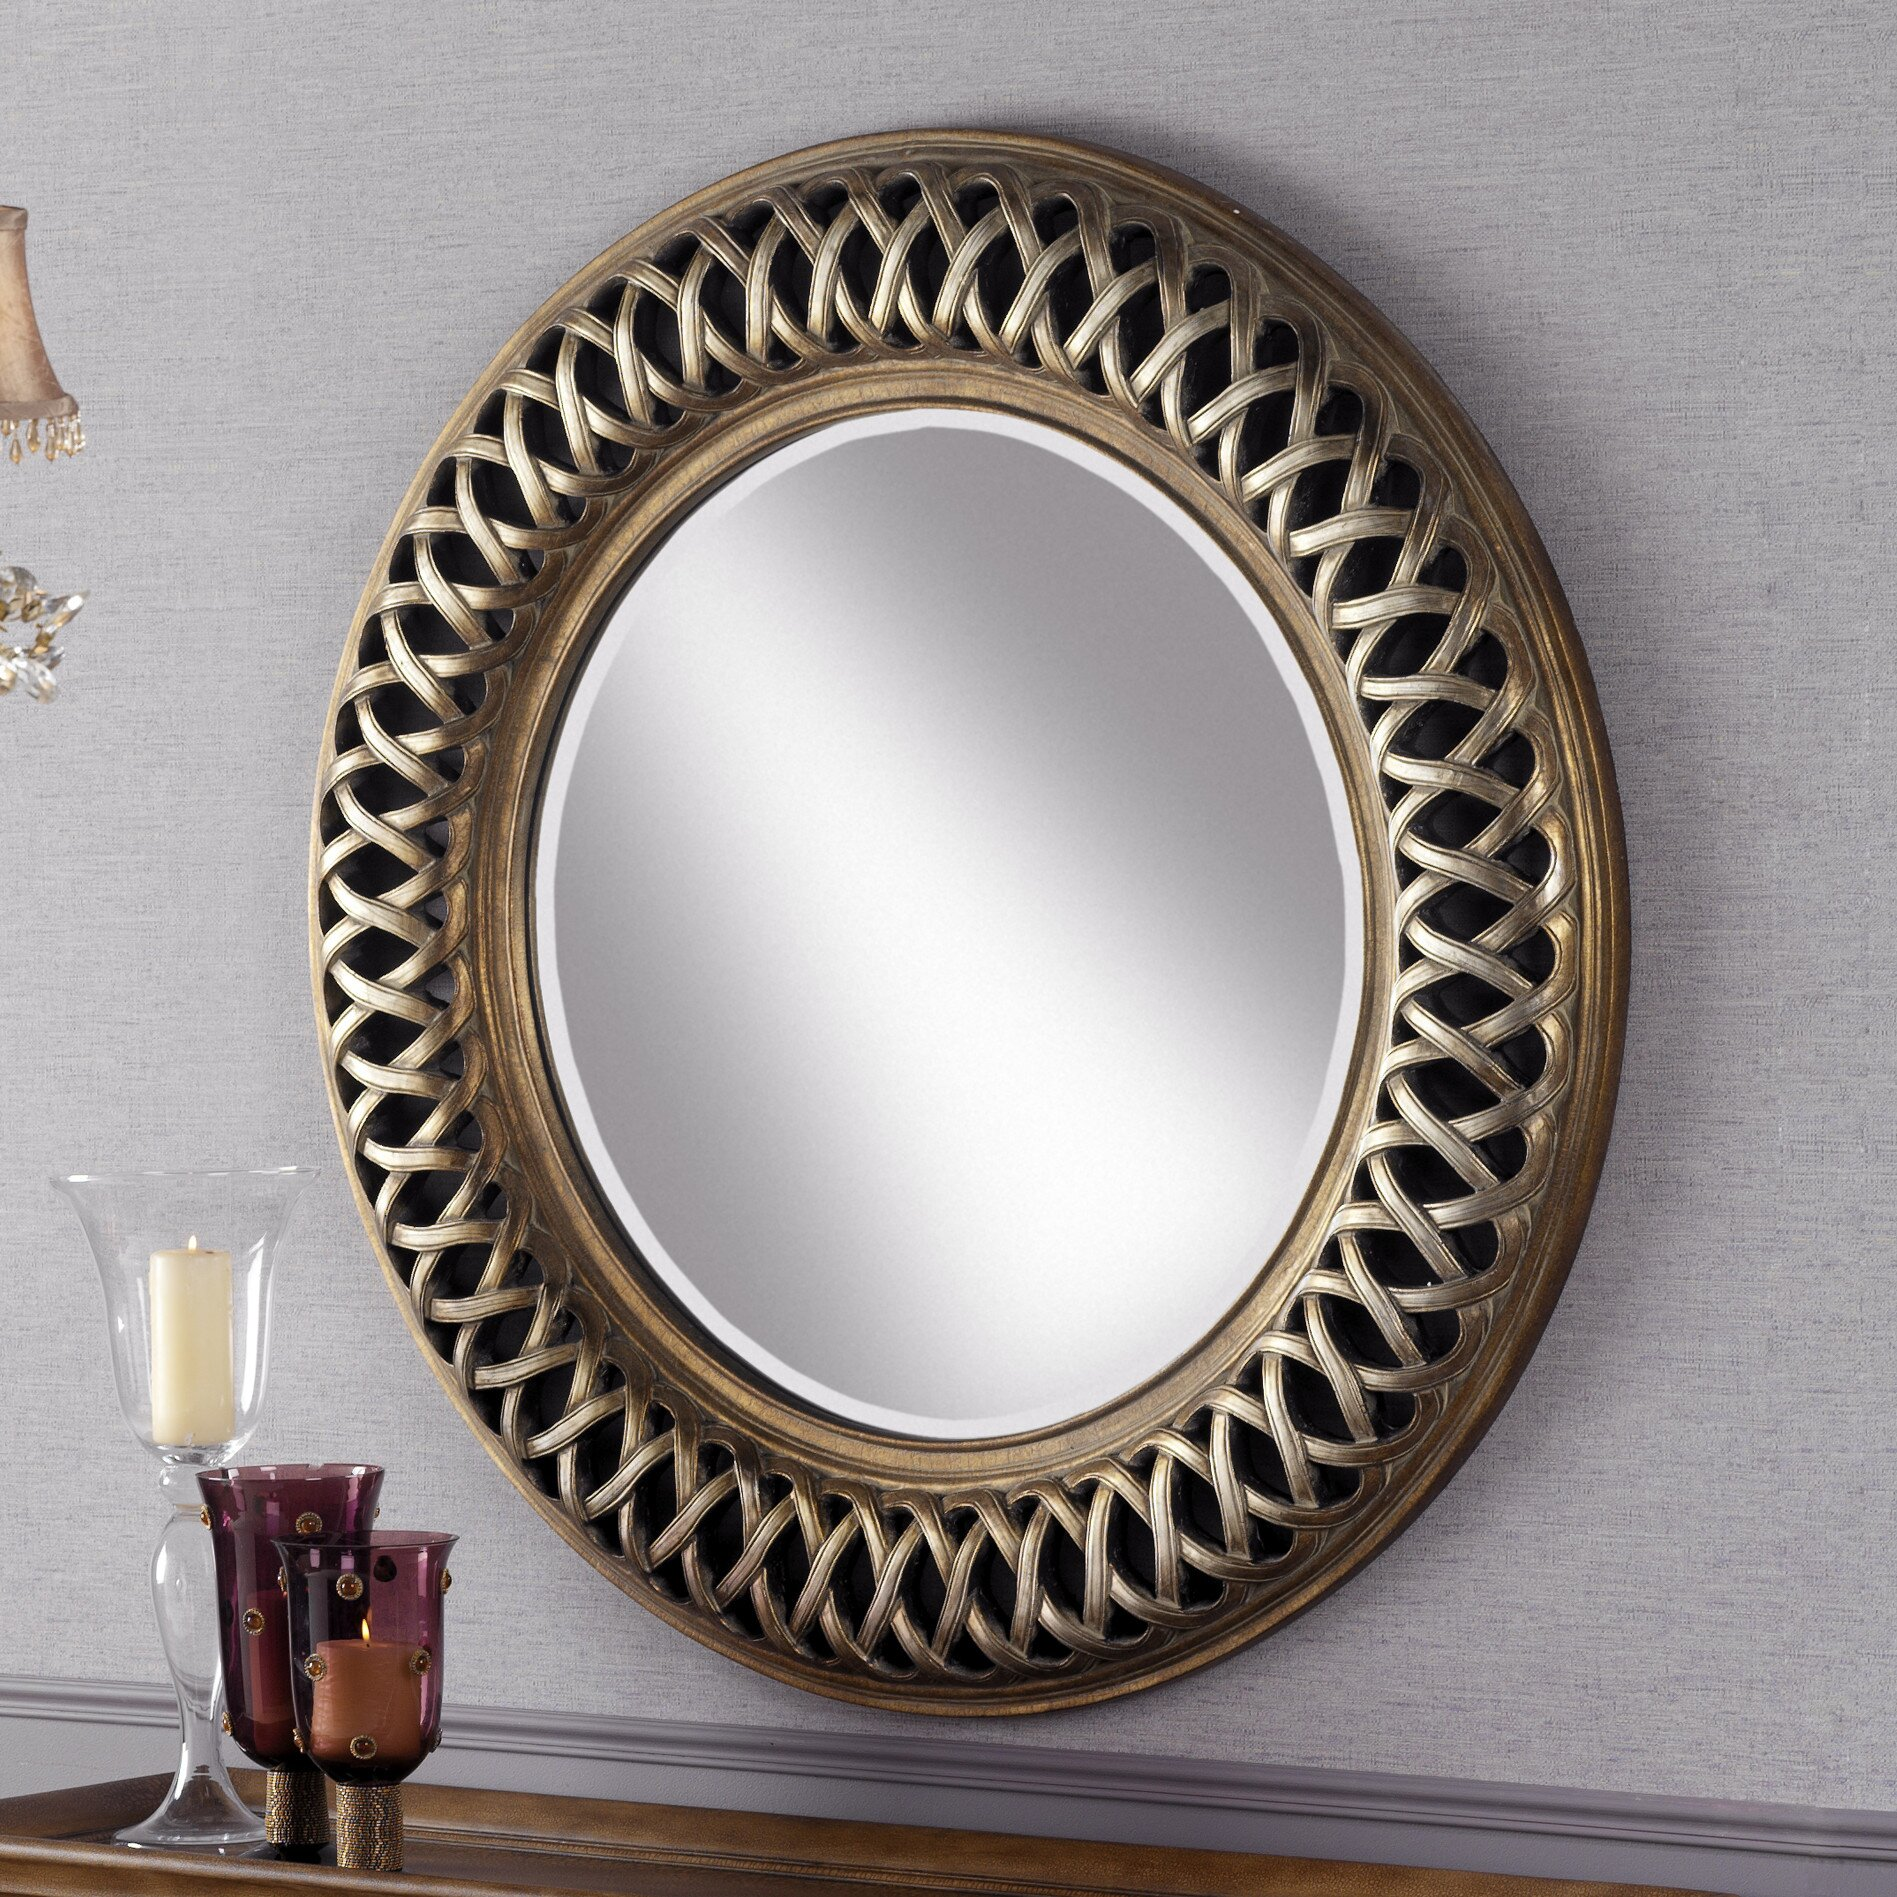 schuller classic round mirror reviews wayfair uk